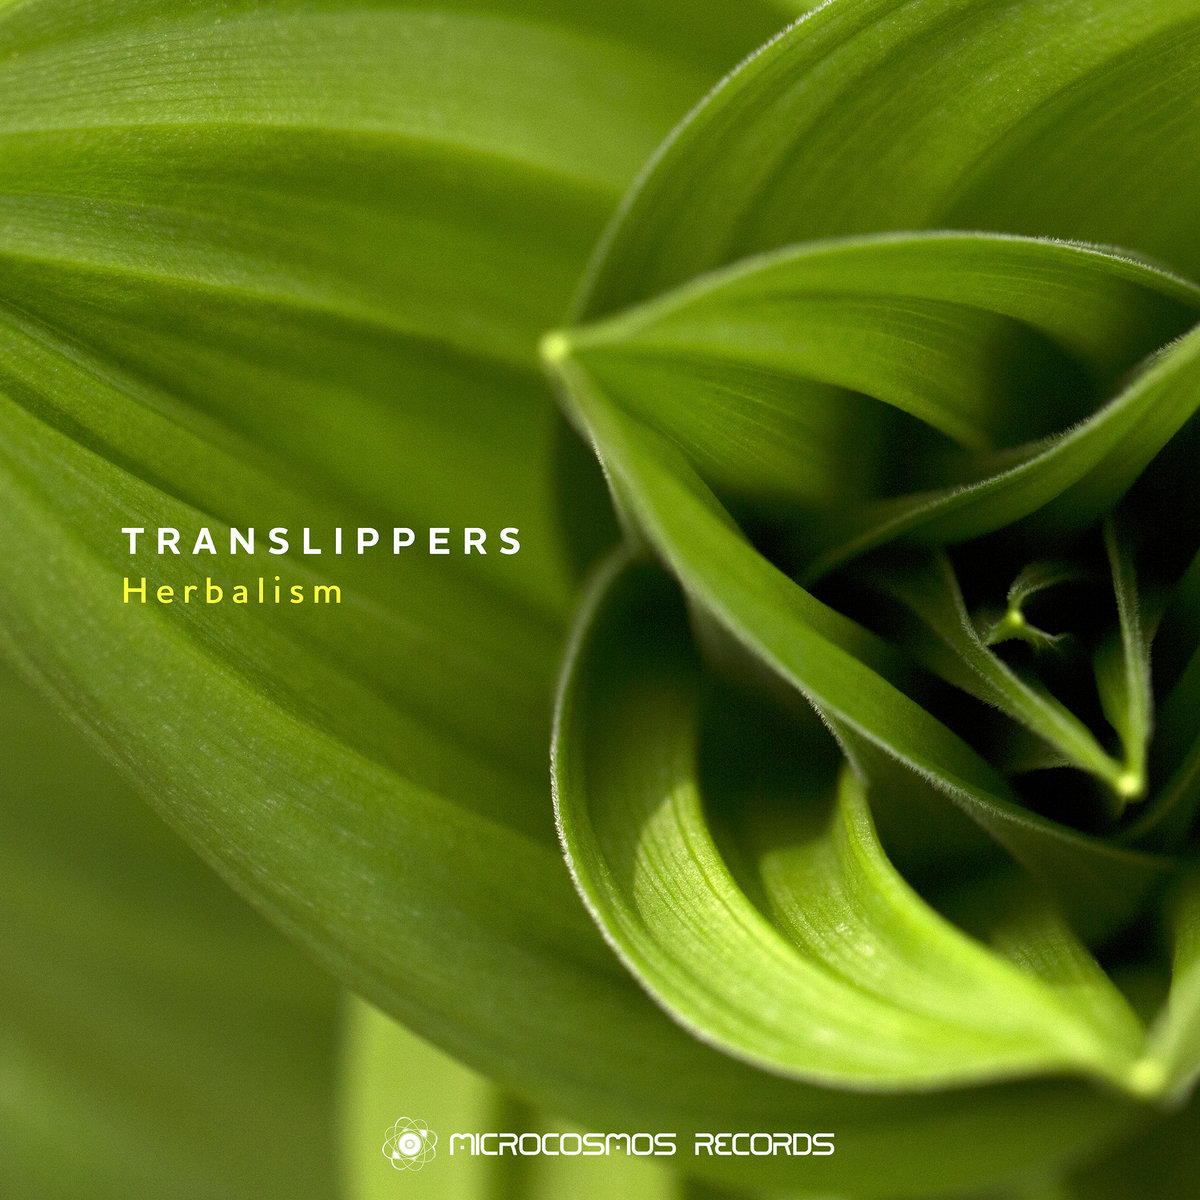 Translippers - Walk Your Capybara @ 'Herbalism' album (ambient, chill-out)